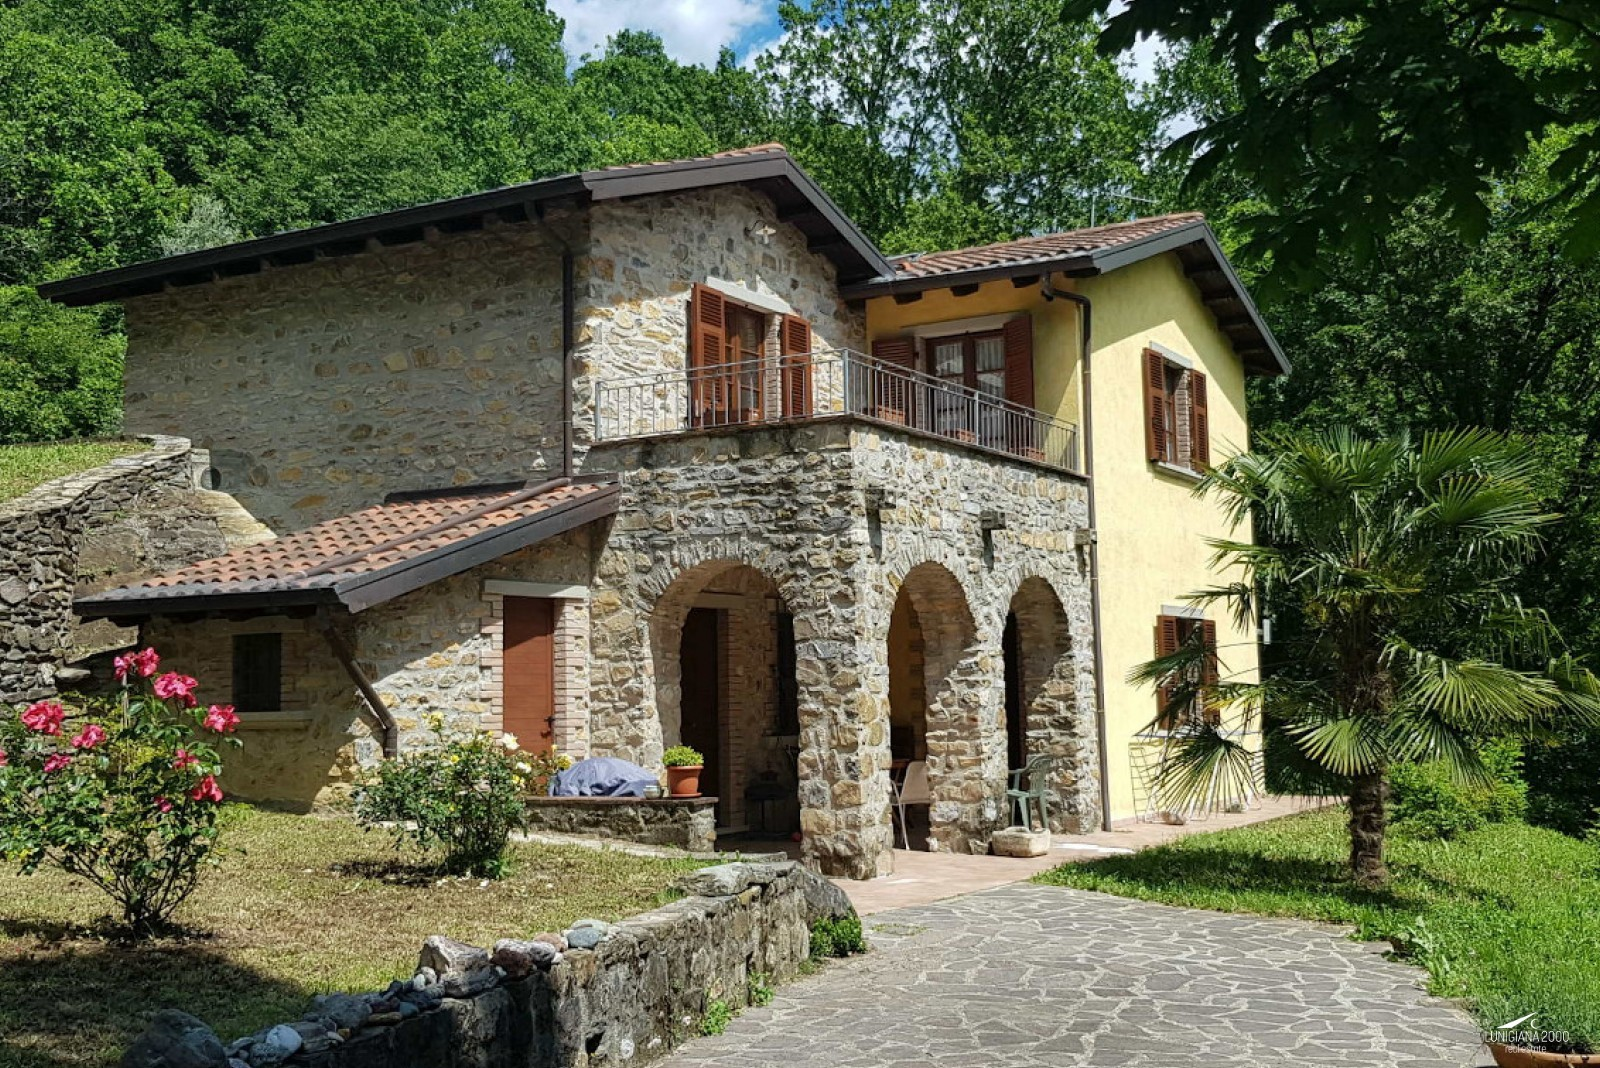 Characteristic stone farmhouse well restored with land